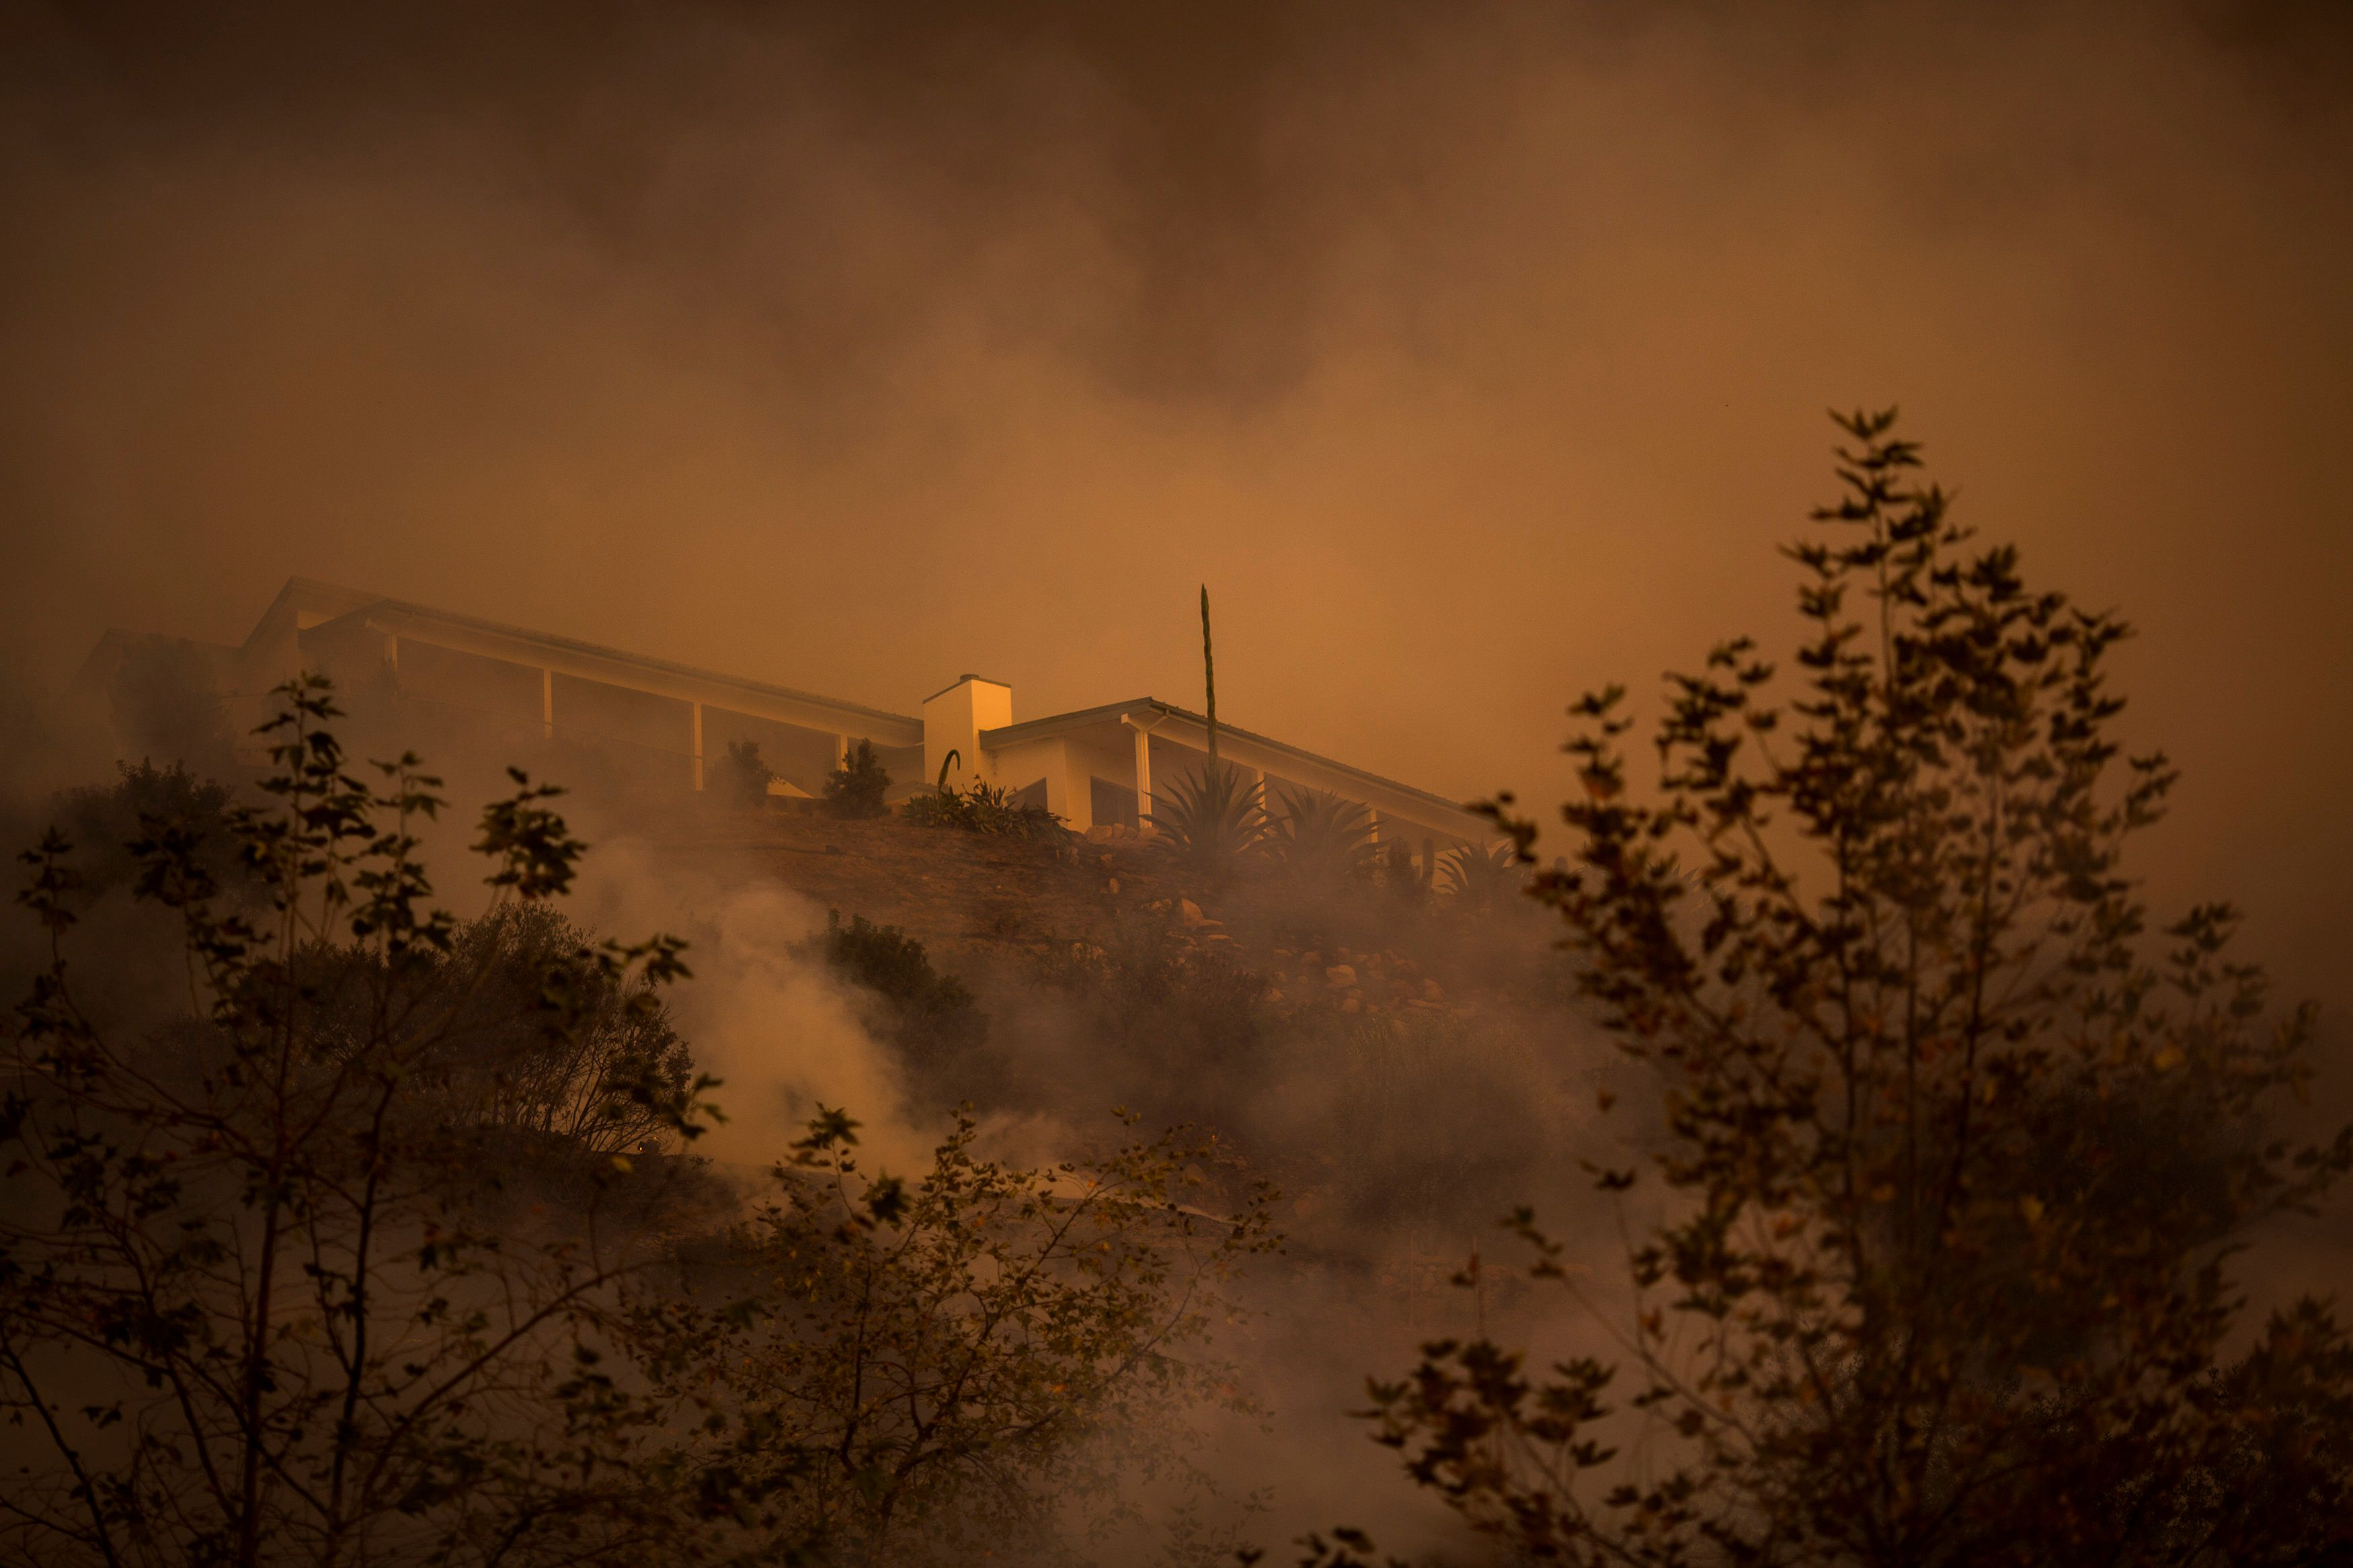 MONTECITO, CA - DECEMBER 16: Fire passes between homes at the Thomas Fire on December 16, 2017 in Montecito, California. The National Weather Service has issued red flag warnings of dangerous fire weather in Southern California for the duration of the weekend. Prior to the weekend, Los Angeles and Ventura counties had 12 consecutive days of red flag fire warnings, the longest sustained period of fire weather warnings on record. The Thomas Fire is currently the fourth largest California fire since records began in 1932, growing to 400 square miles and destroying more than 1,000 structures since it began on December 4. (Photo by David McNew/Getty Images)